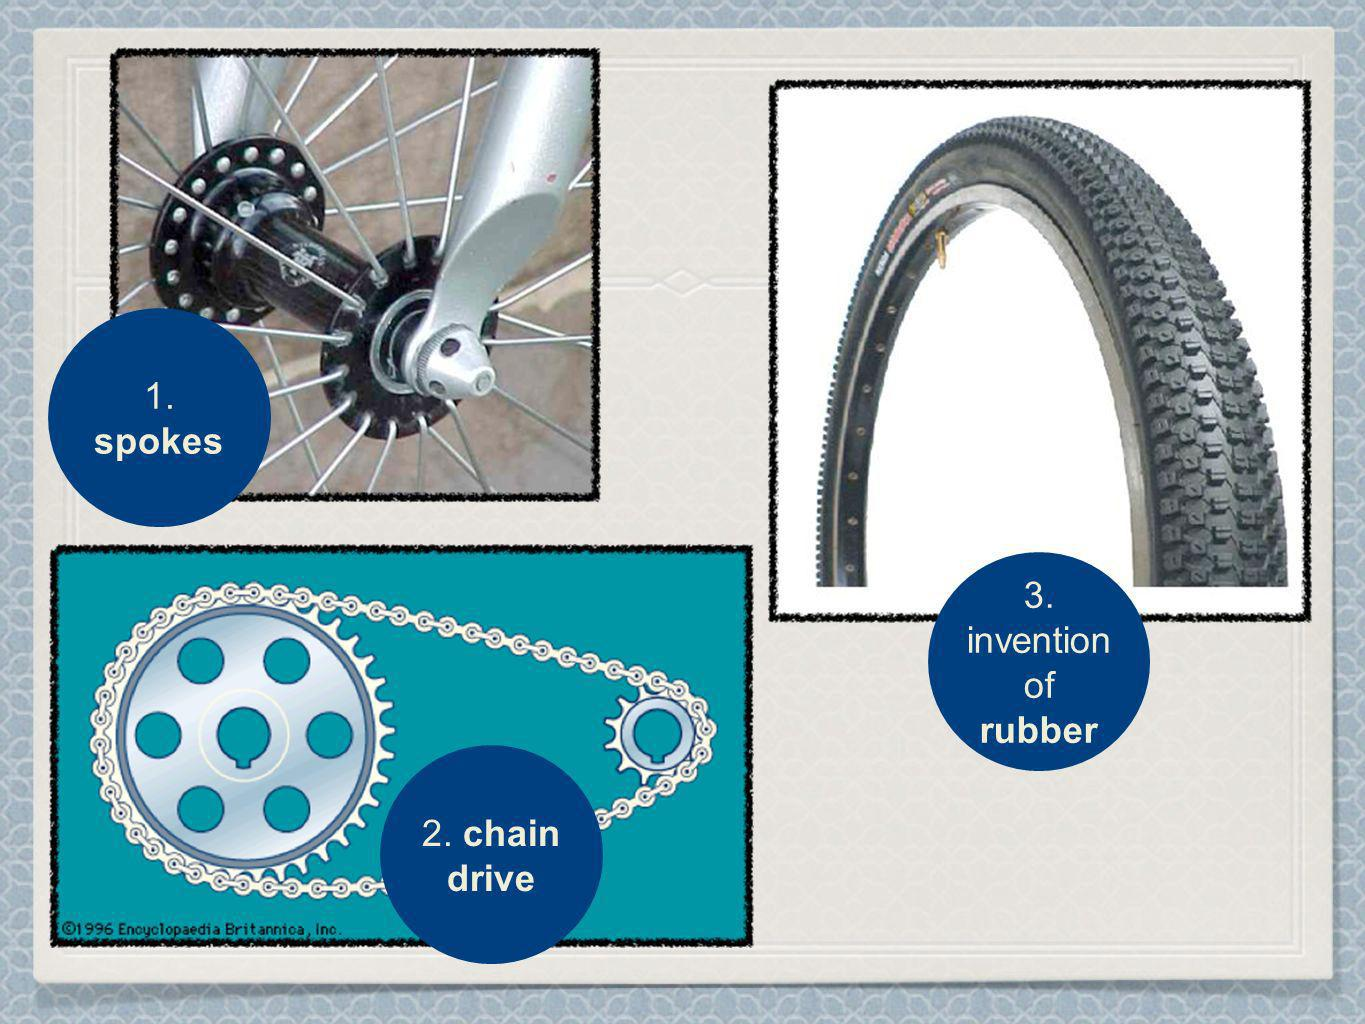 1. spokes 2. chain drive 3. invention of rubber